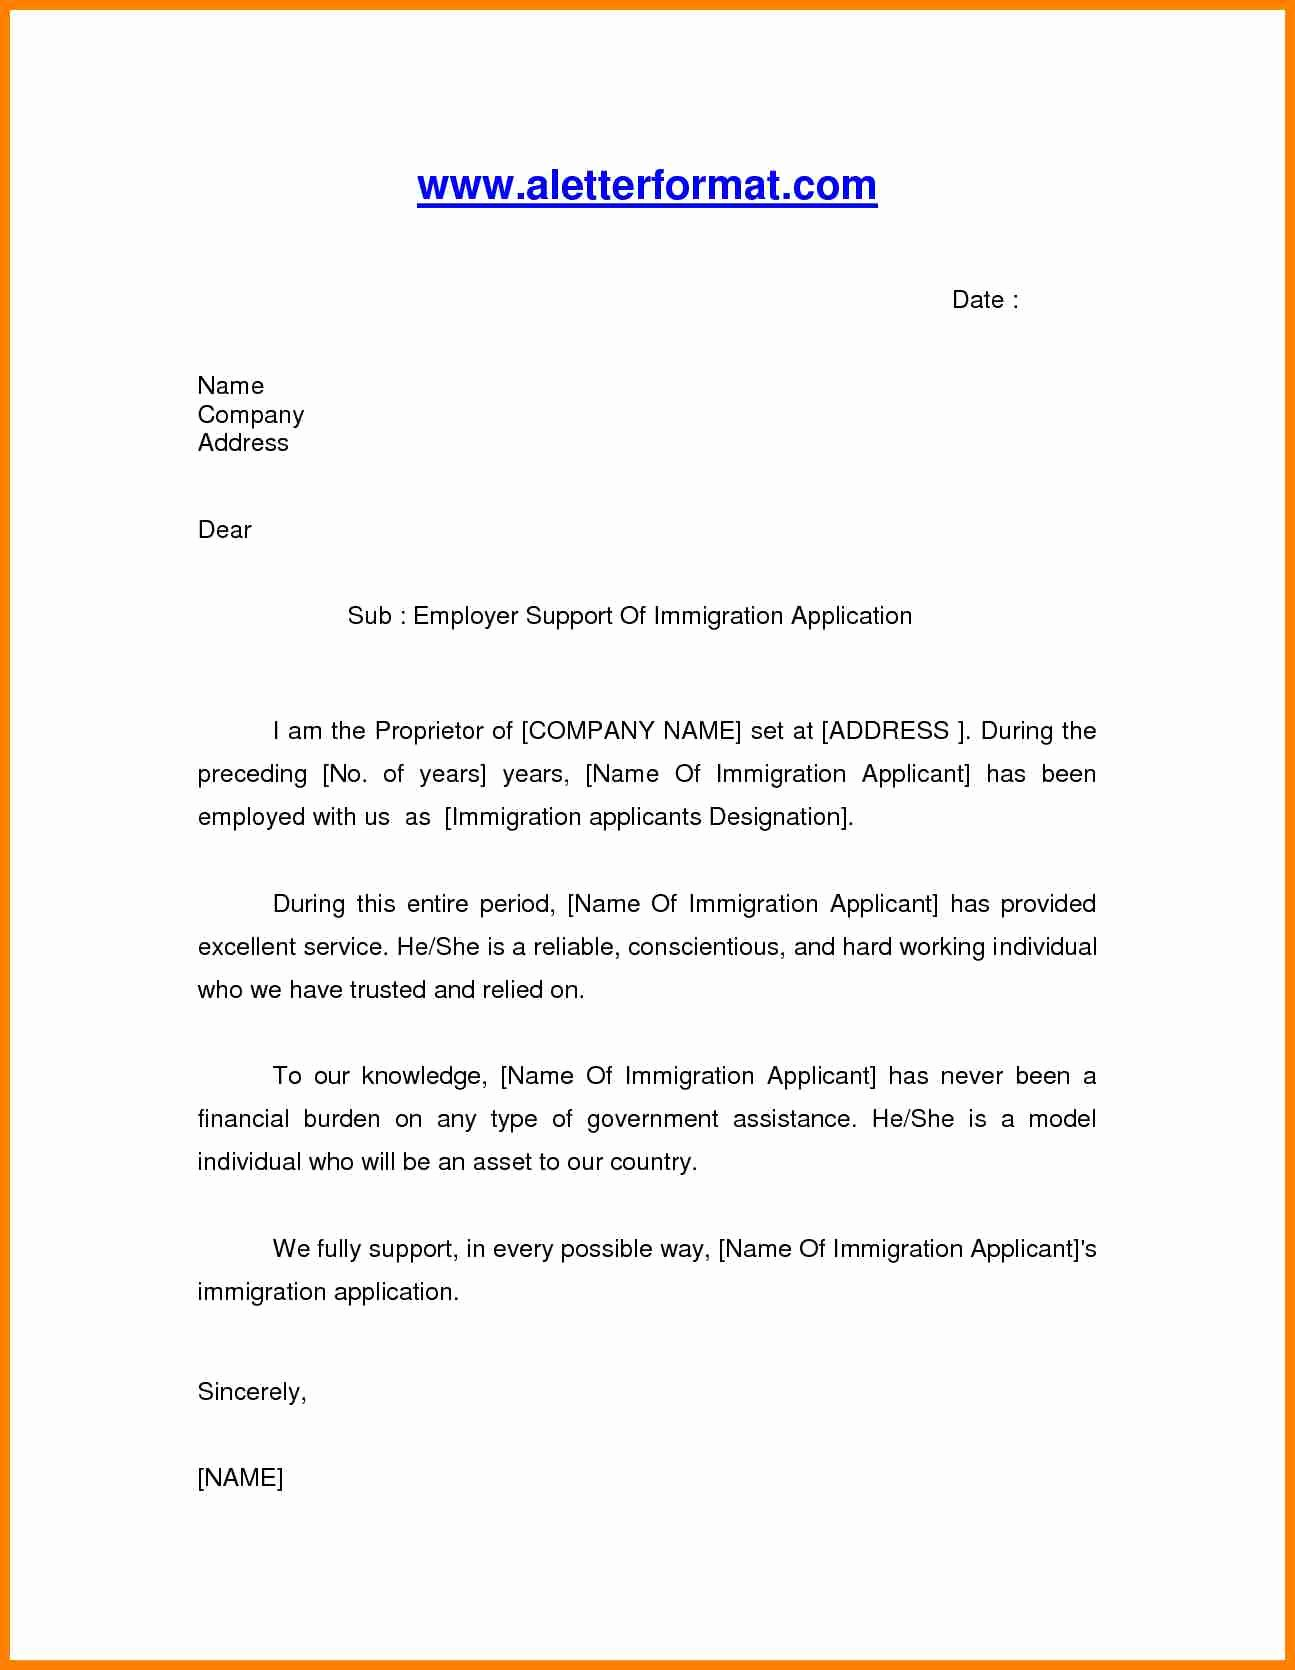 Immigration Letter Of Recommendation Sample Lovely 6 Immigration Letter Of Re Mendation for A Friend